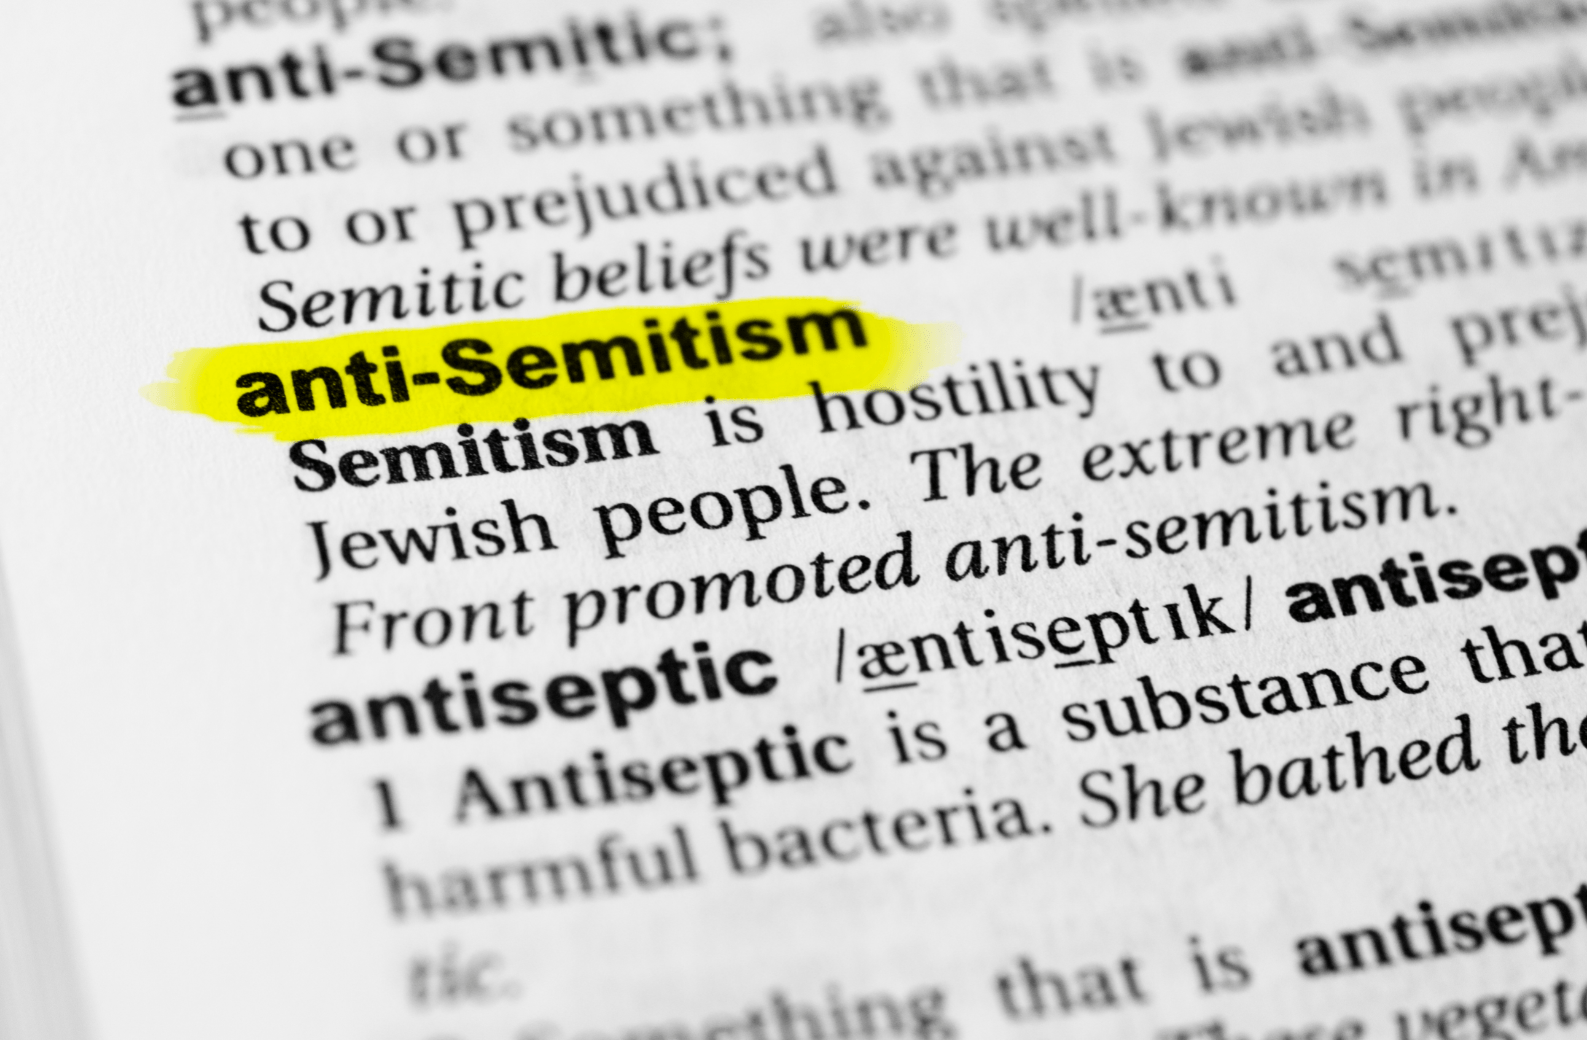 There is no excuse for anti-Semitism